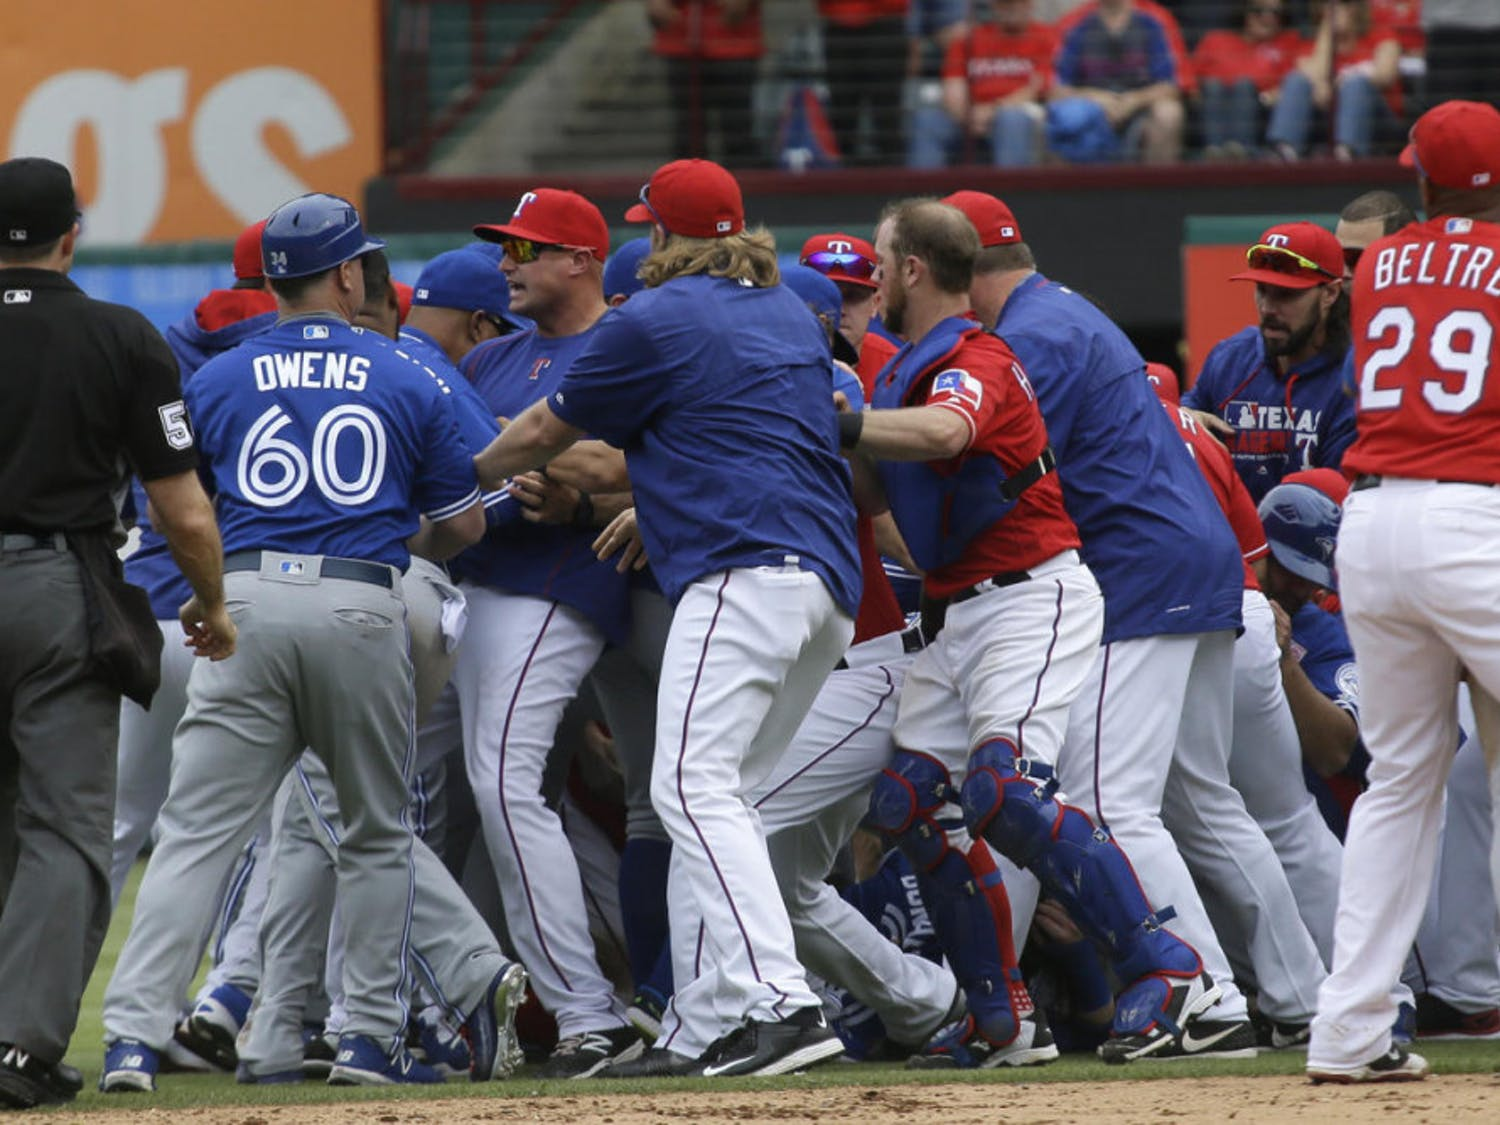 Bench-clearing brawls have been one of the mainstays in Major League Baseball over the last several decades.